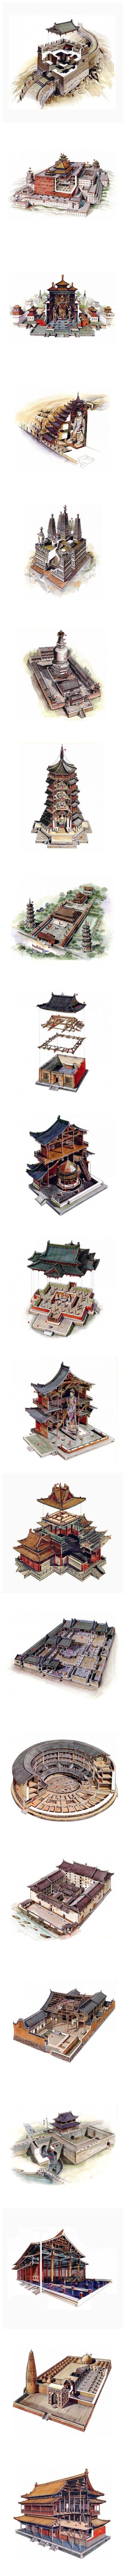 Traditional Chinese Architecture http://www.visiontimes.com/2015/04/05/see-the-unique-anatomy-of-these-10-classical-chinese-buildings.html                                                                                                                                                     More